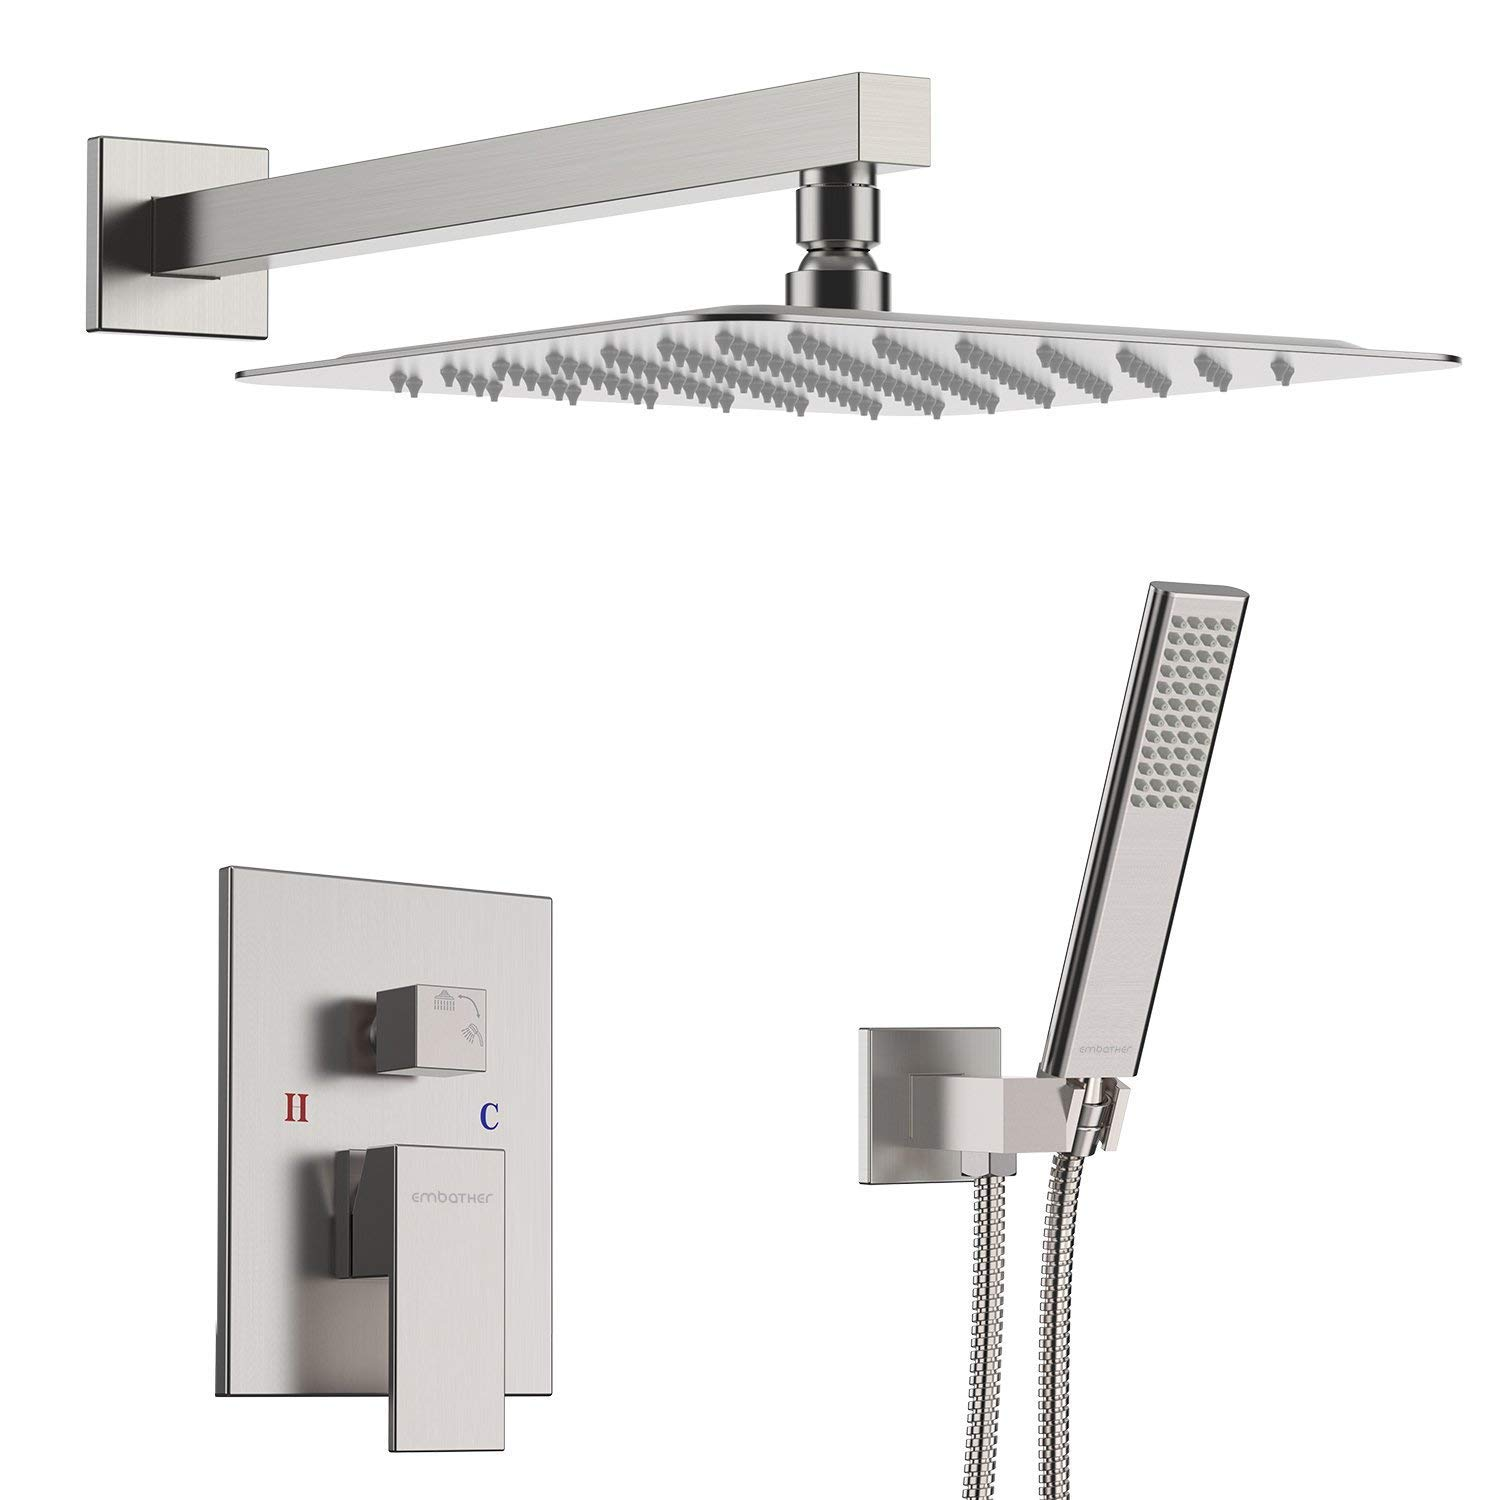 EMBATHER Shower System- Brushed Nickel Shower Faucet Set for Bathroom- State-of-the-art Air Injection Technology- 12'' Square Rain Shower Head- Easy Installation- Eco-Friendly